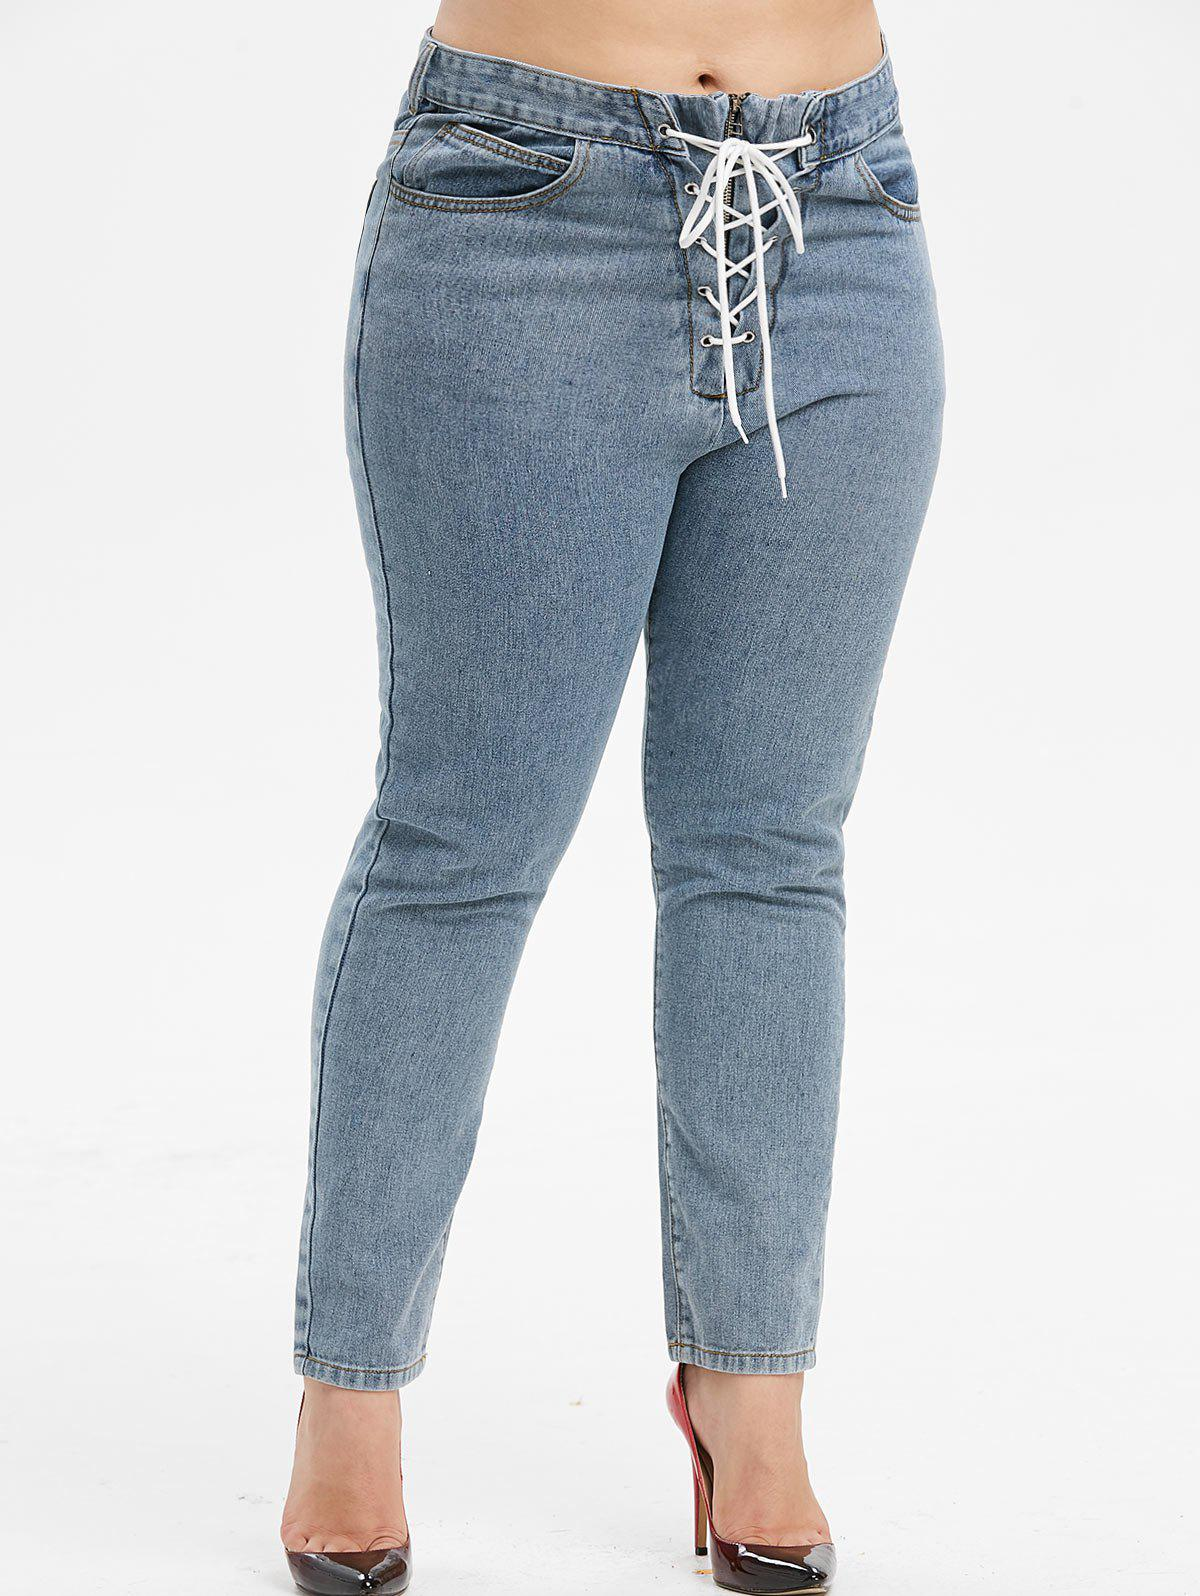 Fancy Plus Size High Waisted Lace Up Jeans